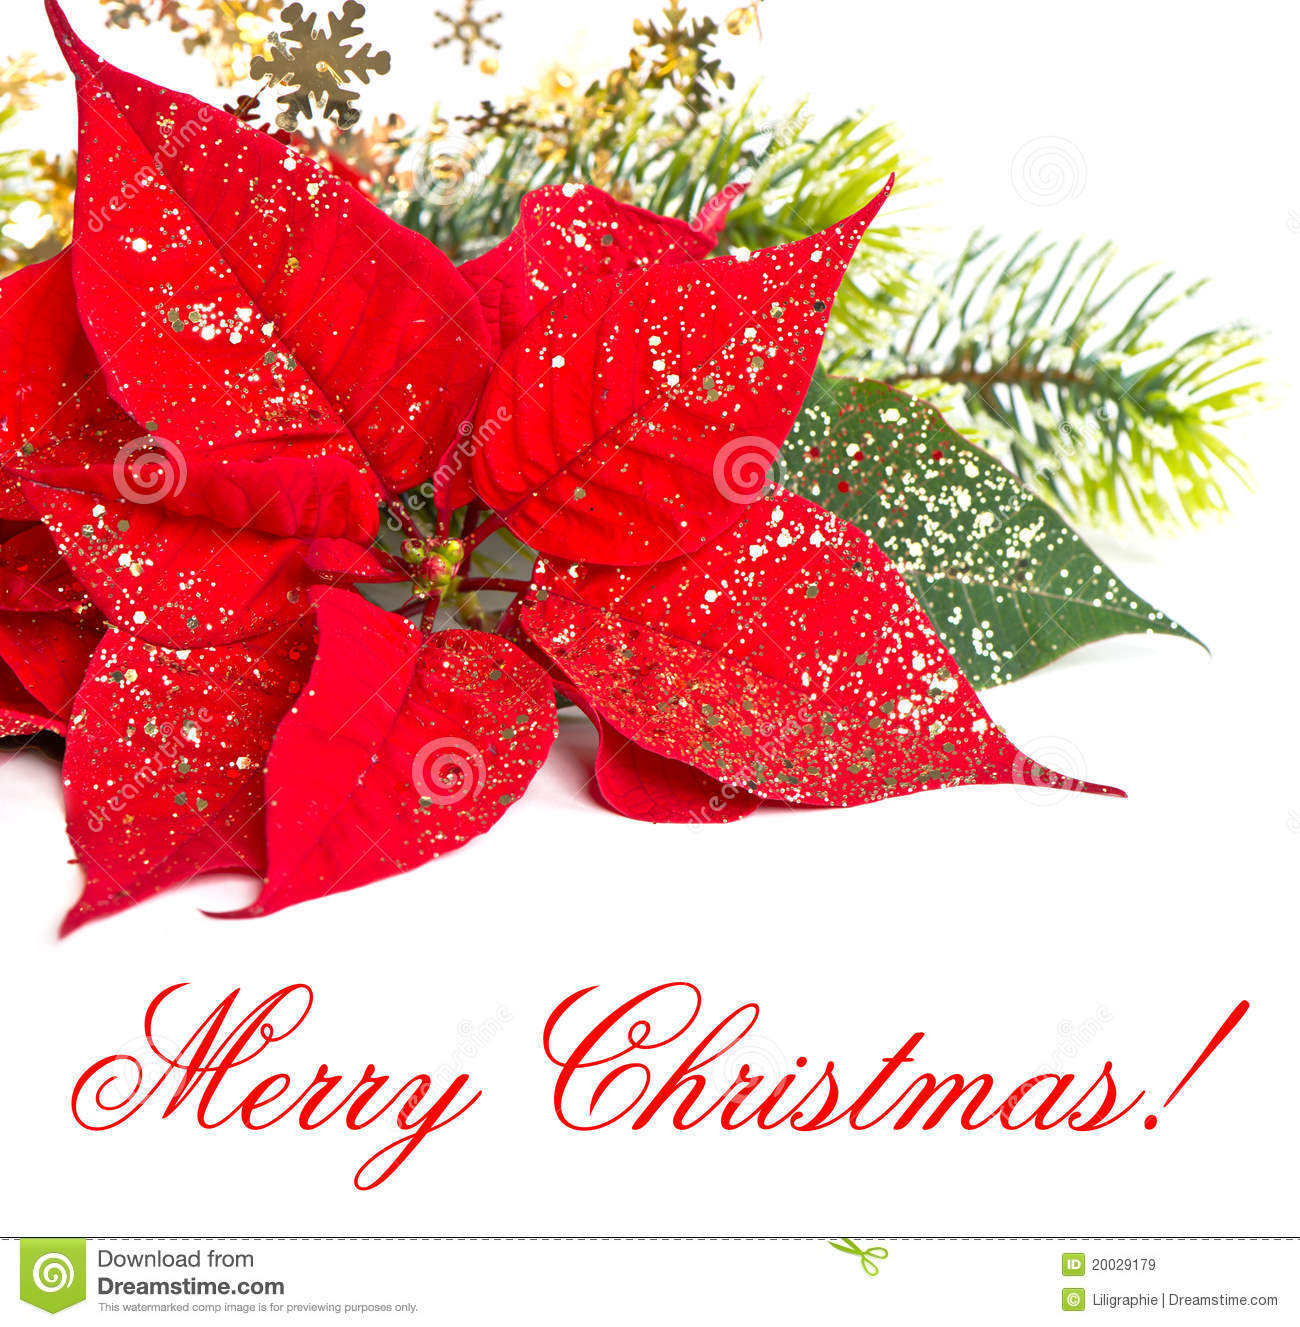 Christmas flowers pictures free svg royalty free stock Red Poinsettia. Christmas Flowers Stock Photos - Image: 21132233 svg royalty free stock